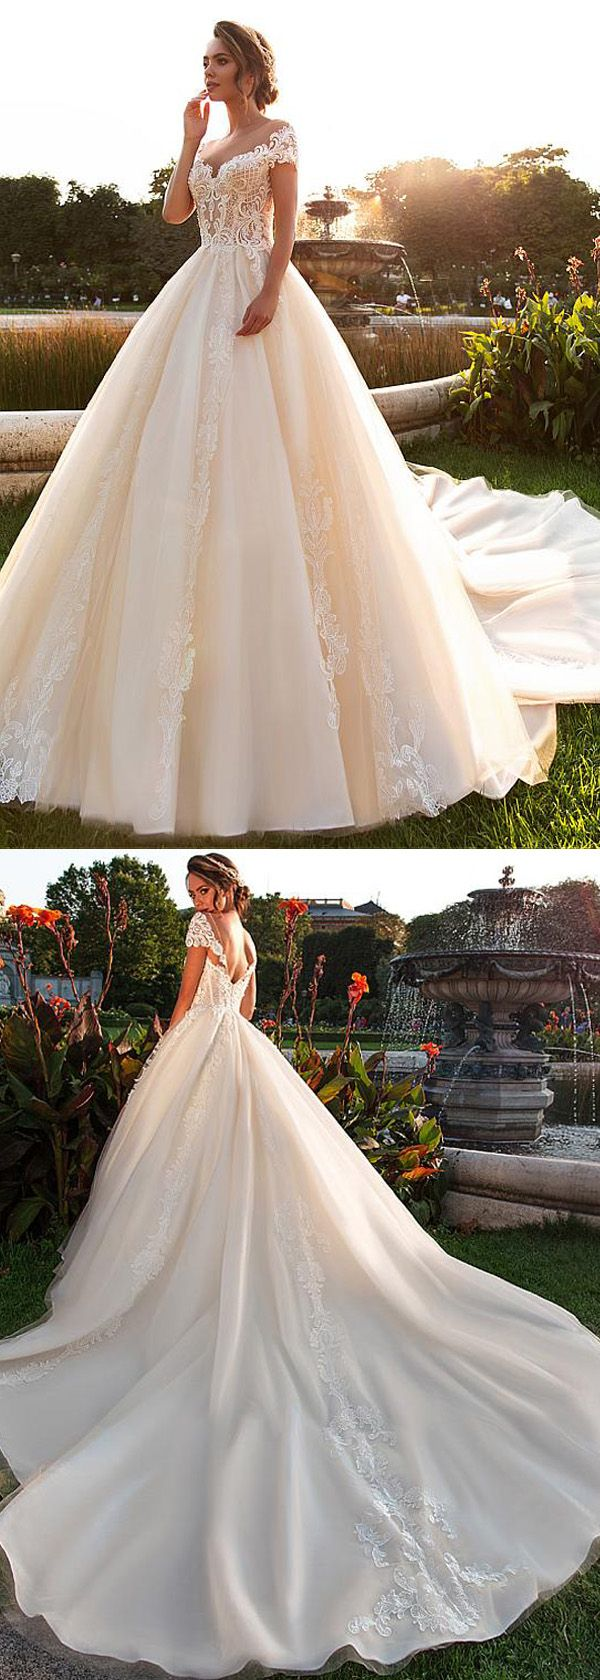 Delicate Tulle Scoop Neckline A-line Wedding Dress With Beaded Lace Appliques